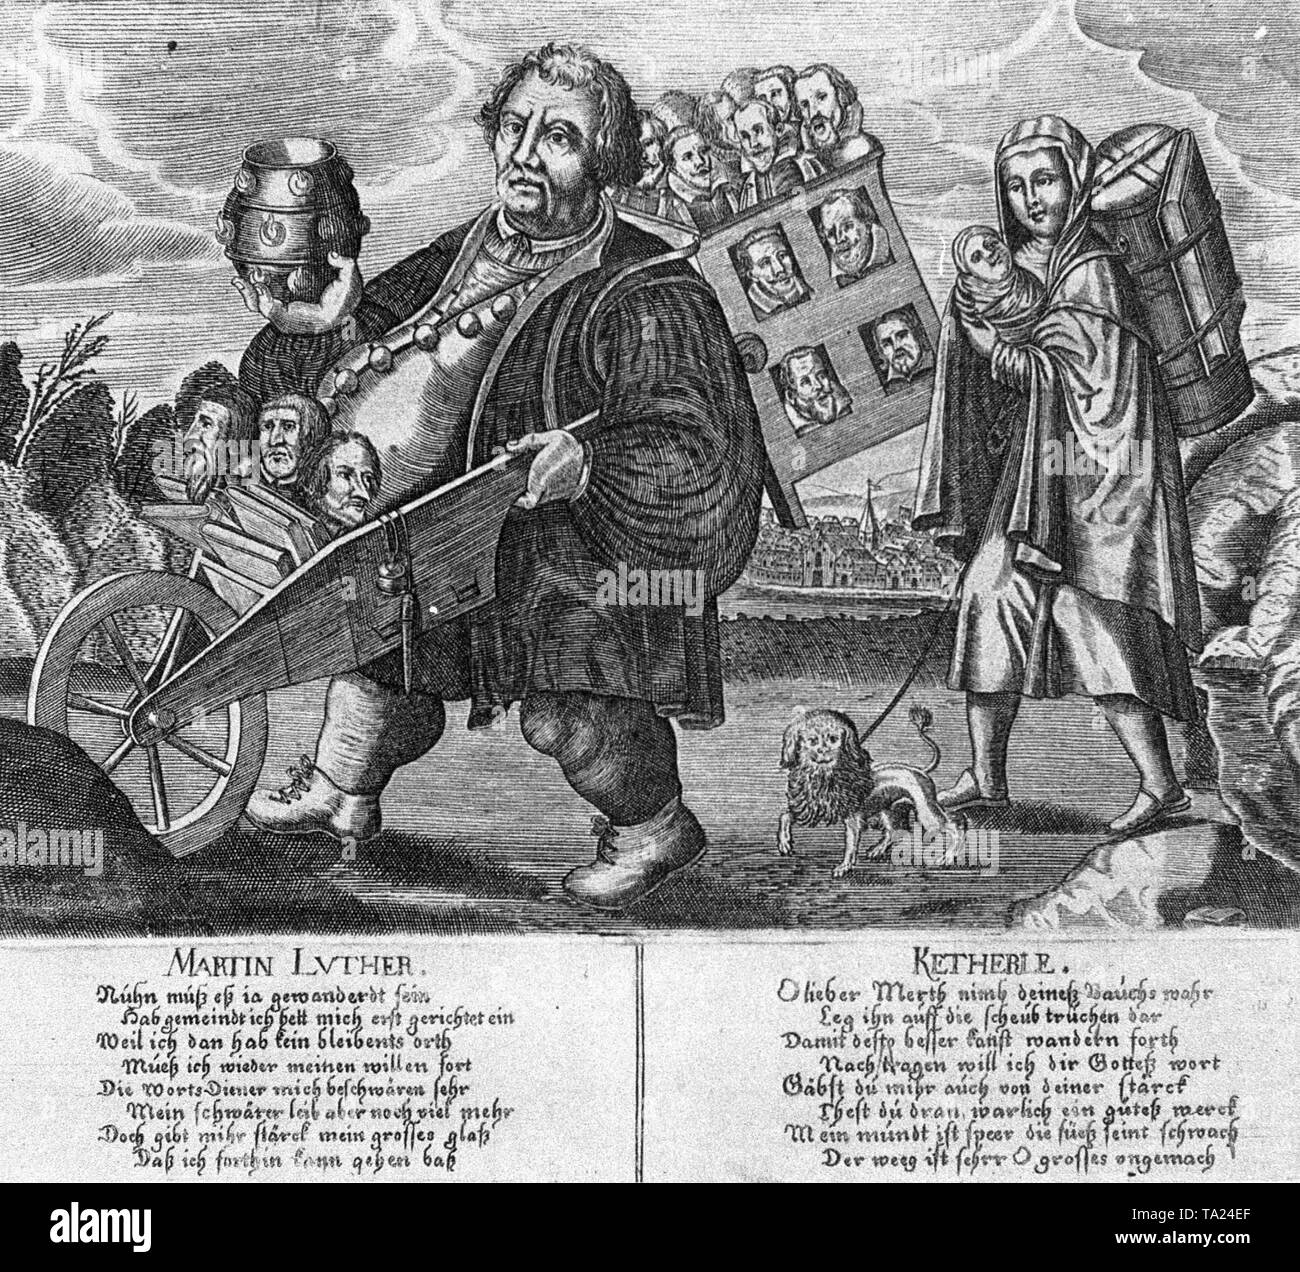 The caricature of Martin Luther and his wife Katharina von Bora ridicules the defeat of Protestantism and the expulsion of the Protestant preachers from Bohemia after the Battle of White Mountain in 1620. - Stock Image